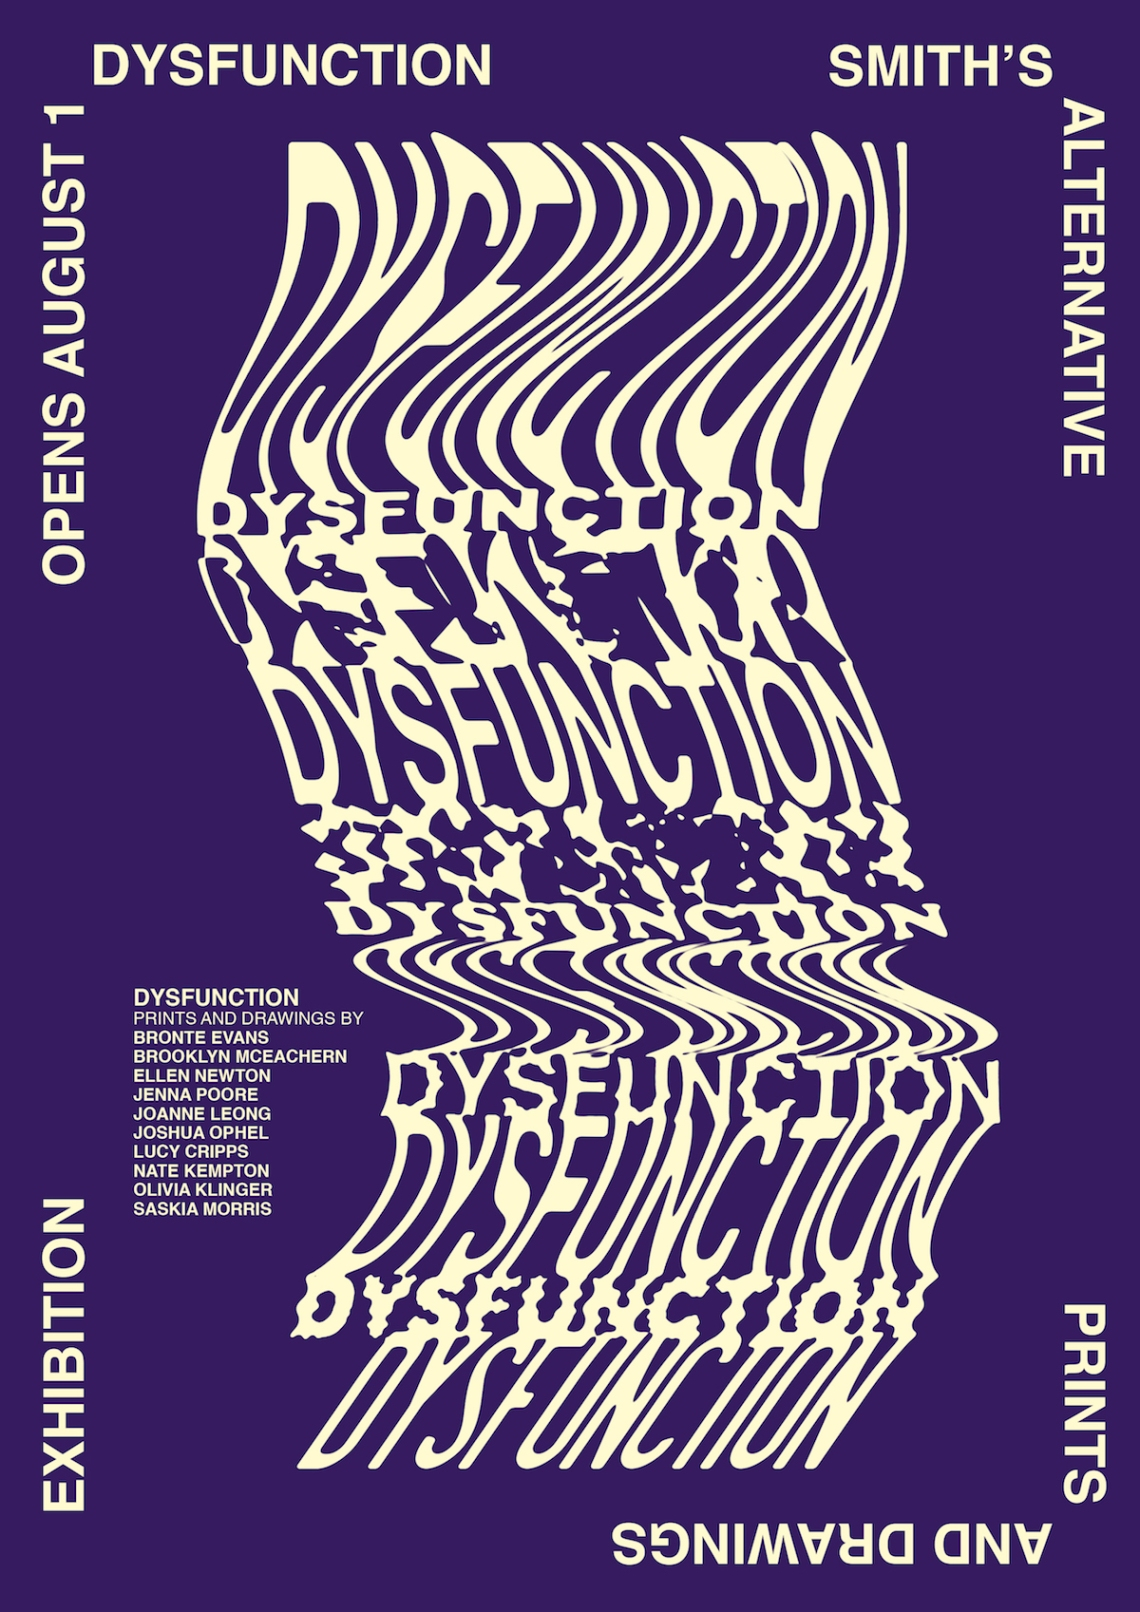 dysfunction exhibition cover.jpg